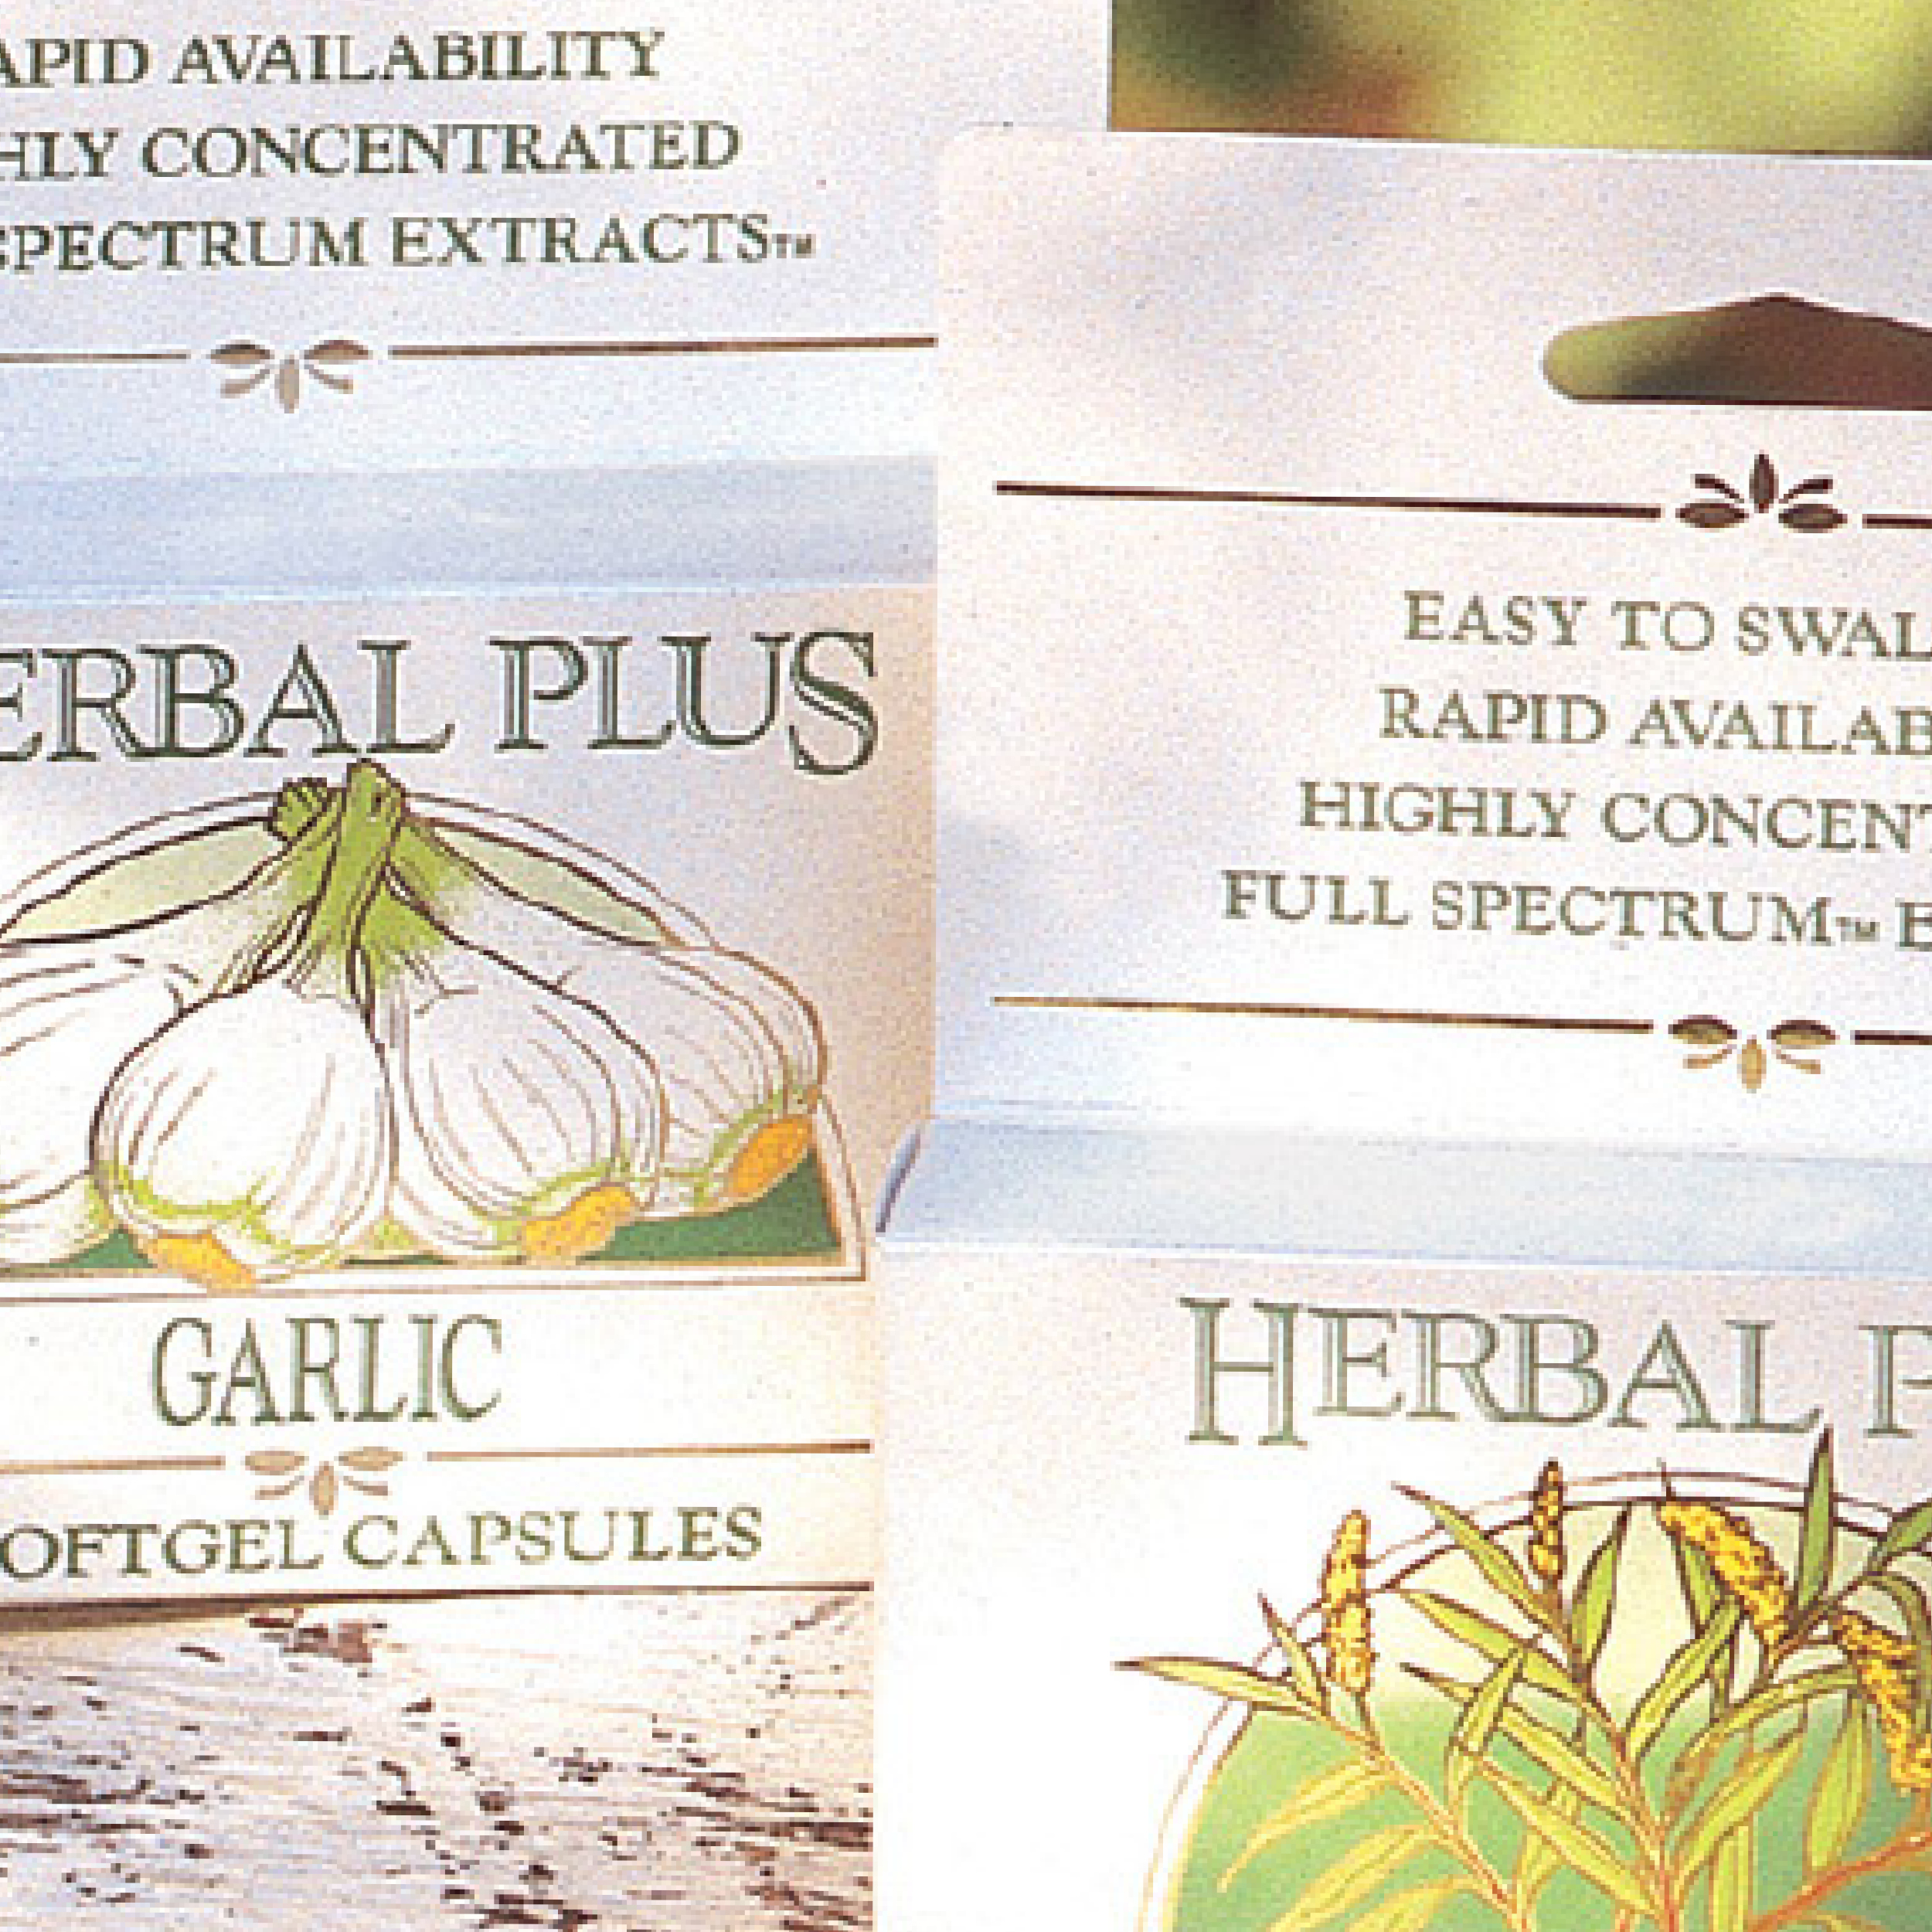 GNC | HERBAL PLUS   PRODUCT POSITIONING PLAN GENERATES $45M+ IN FIRST YEAR SALES